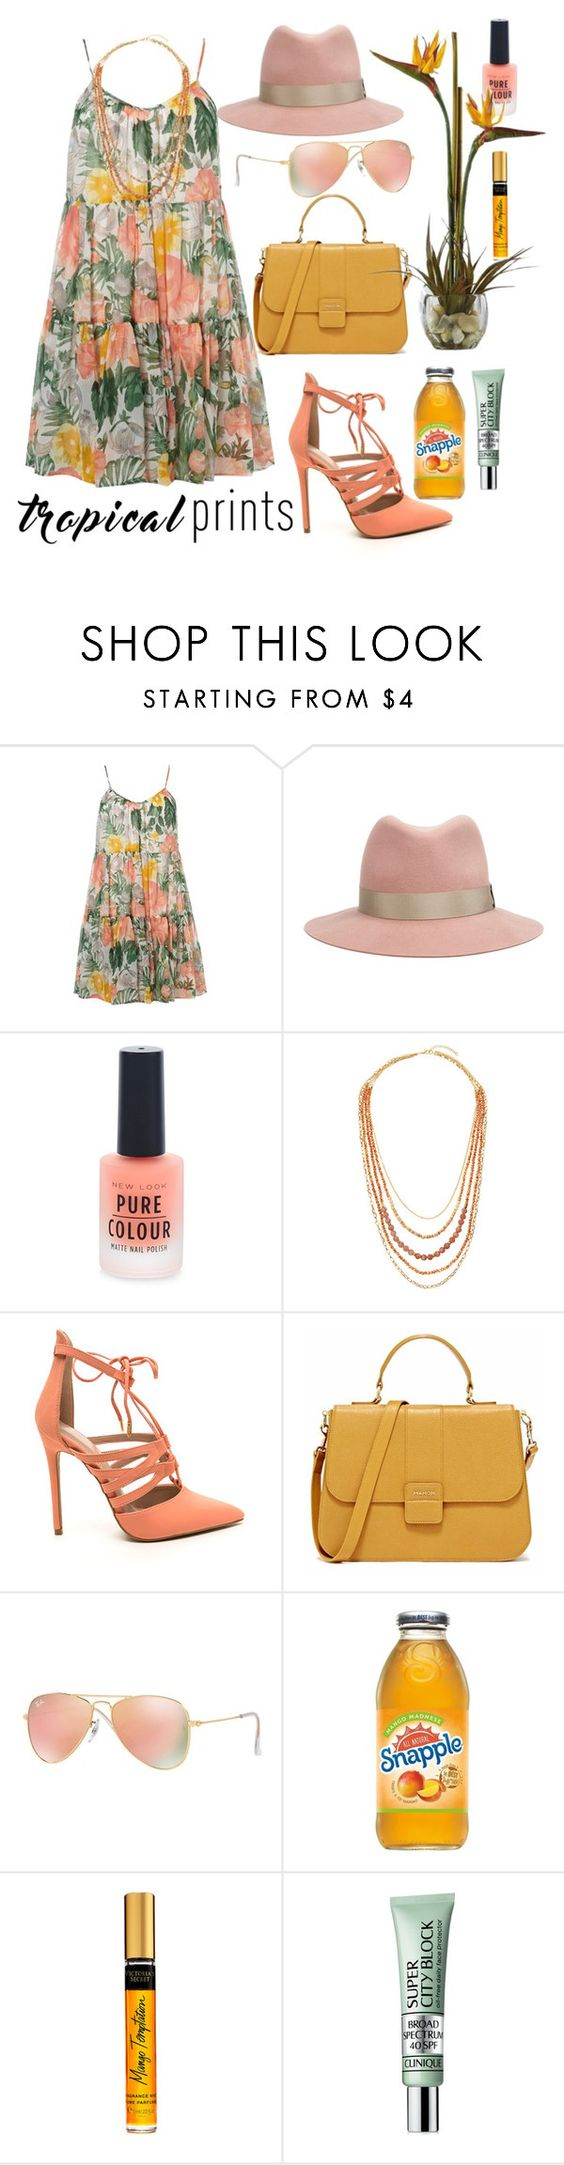 """Tropical prints"" by koryd ❤ liked on Polyvore featuring Dorothy Perkins, rag & bone, New Look, Panacea, Ray-Ban, Clinique, Nearly Natural, tropicalprints and hottropics"